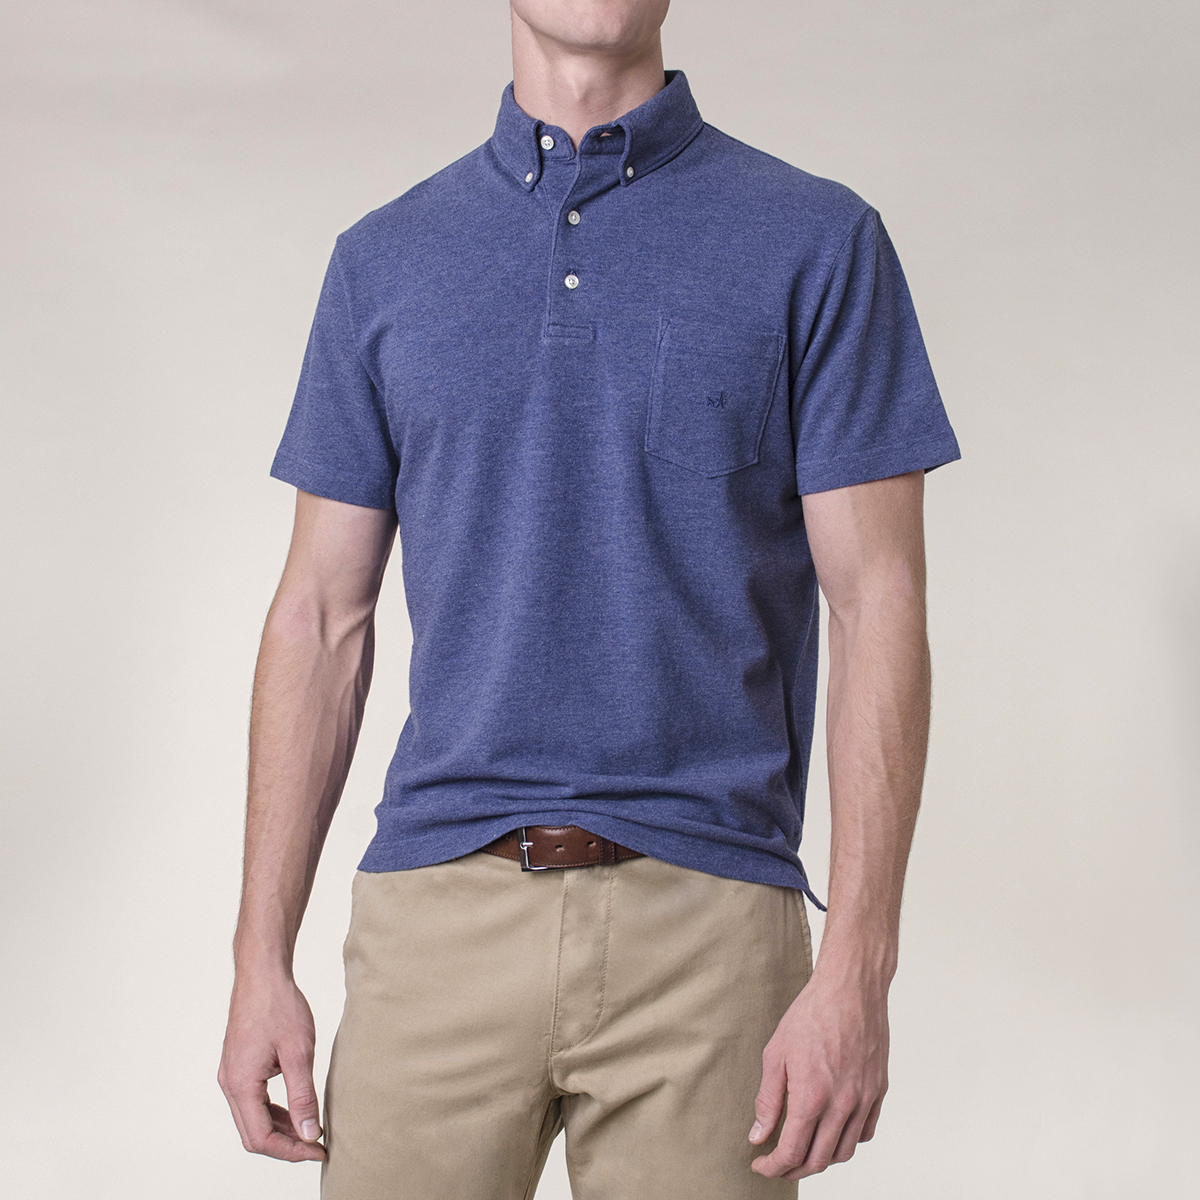 Polera Pique Manga Corta Button Down